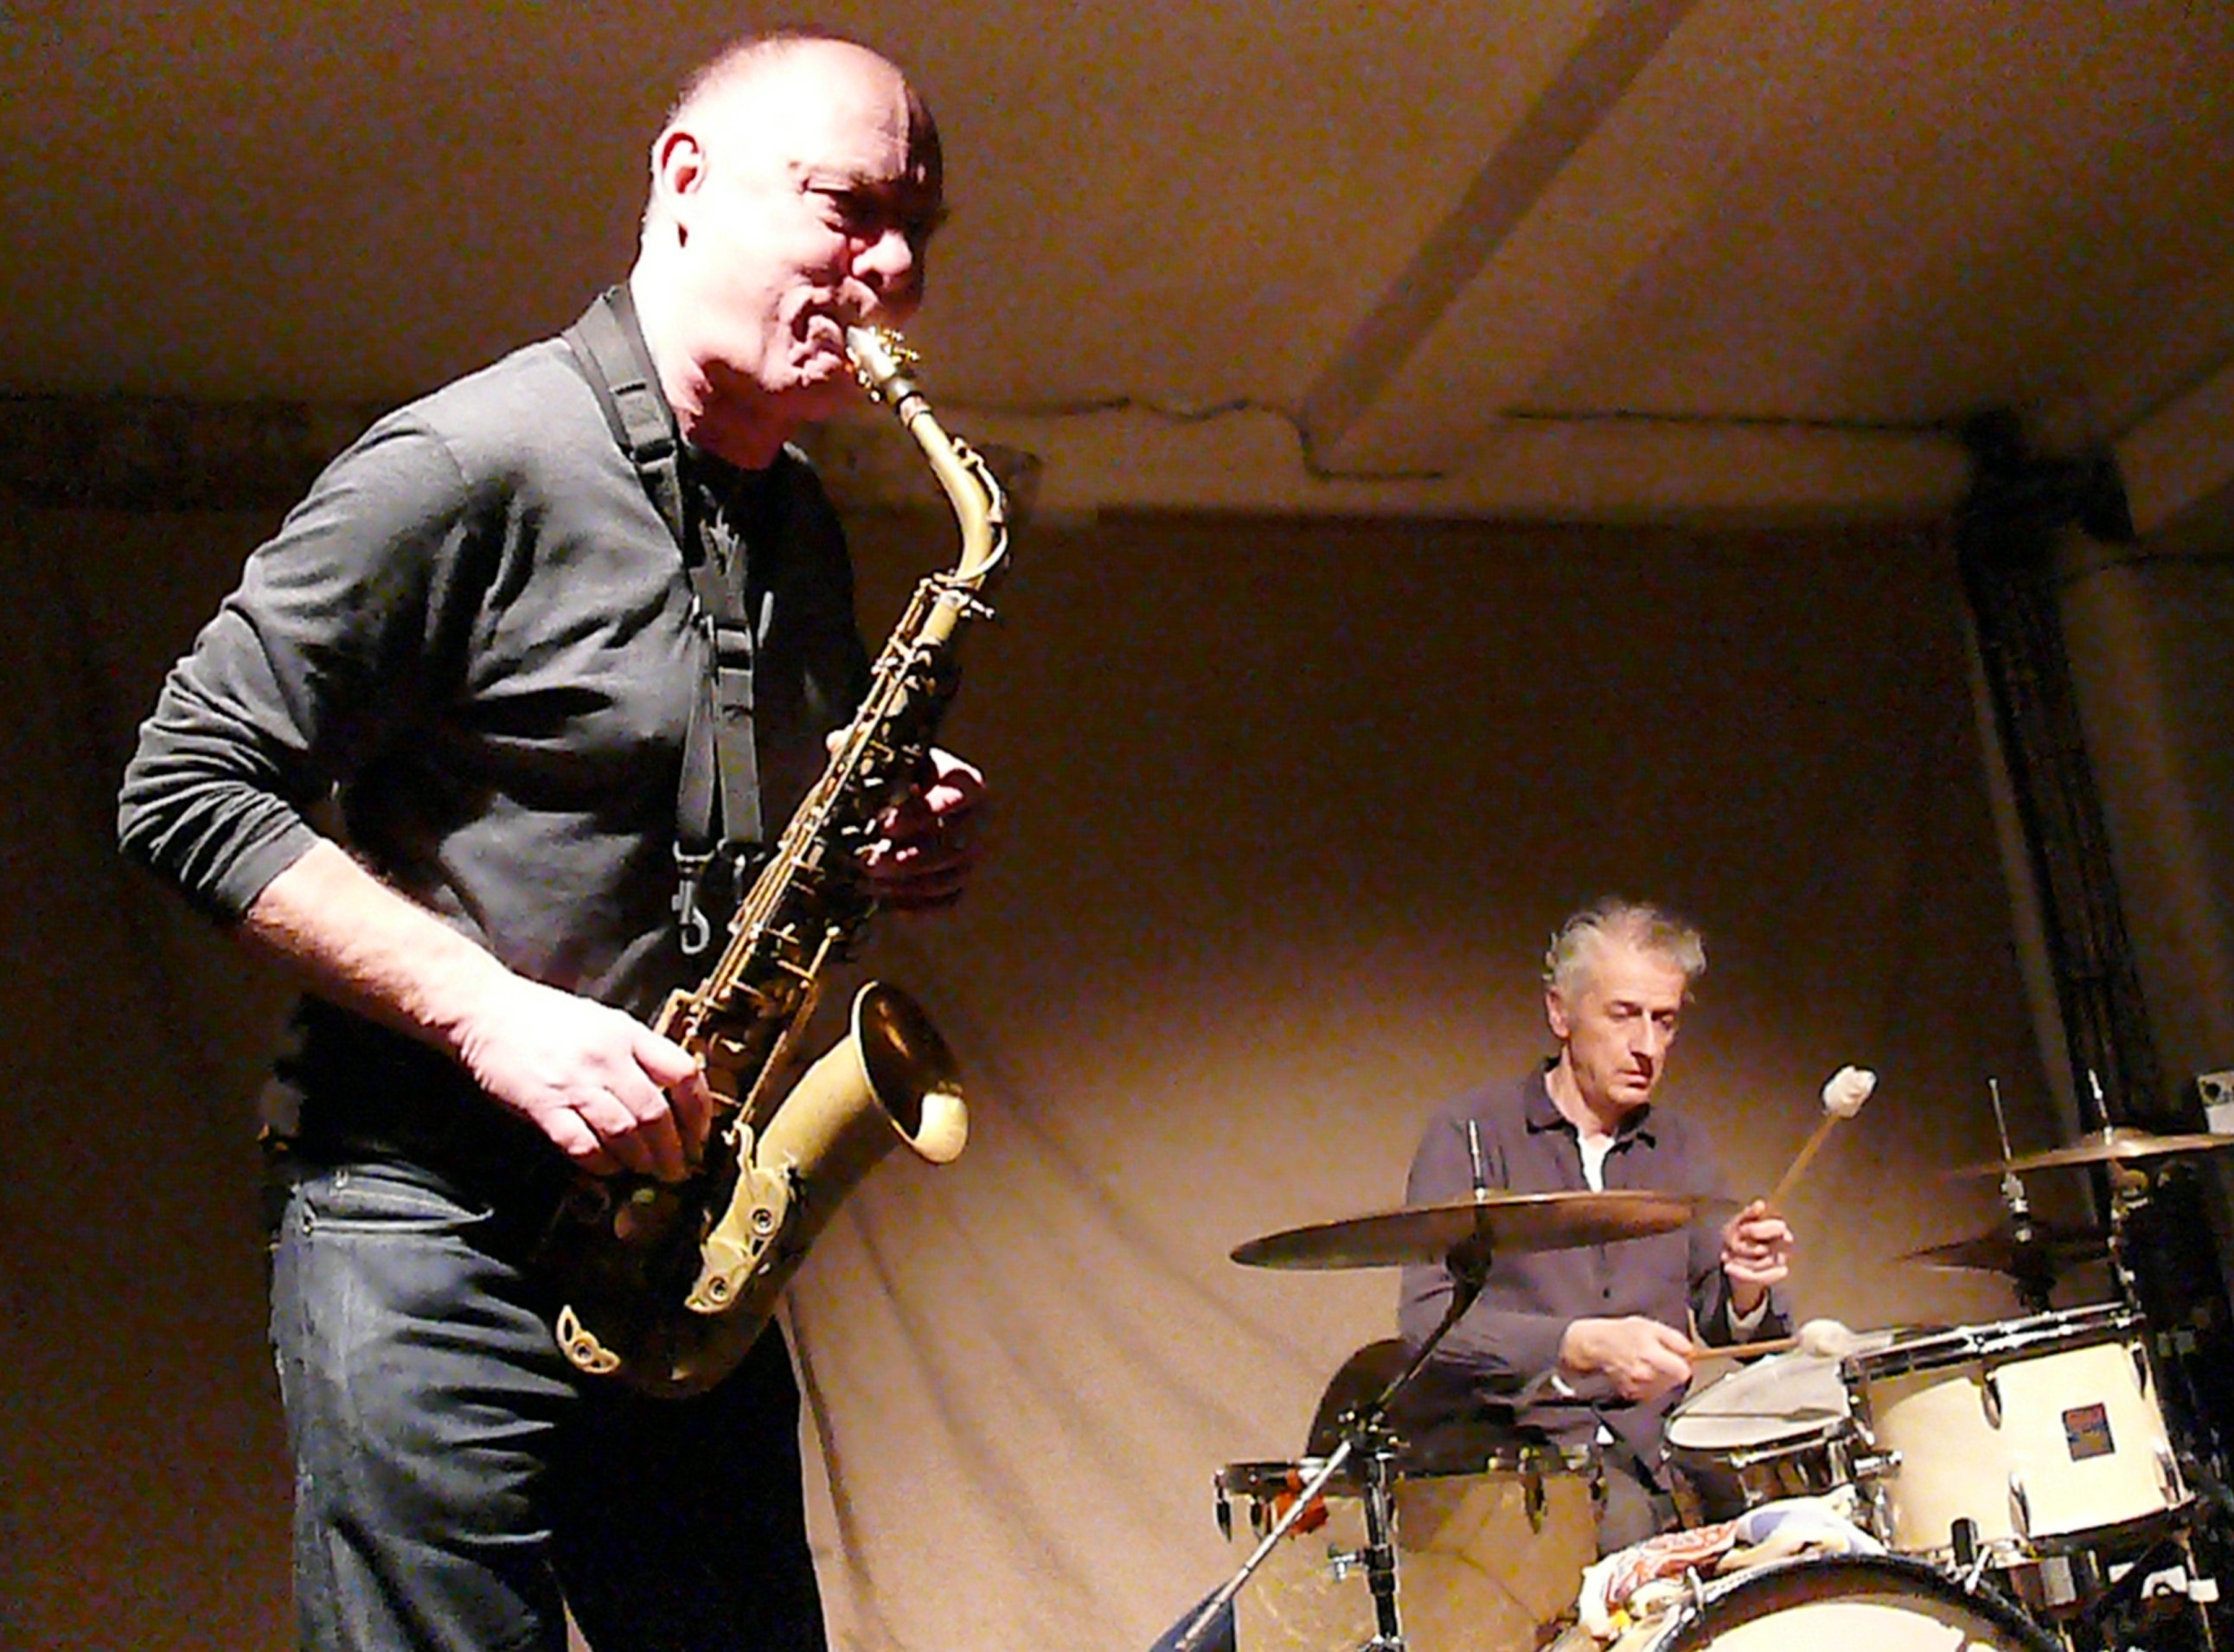 Alan Wilkinson and Steve Noble at Cafe Oto, London in January 2013